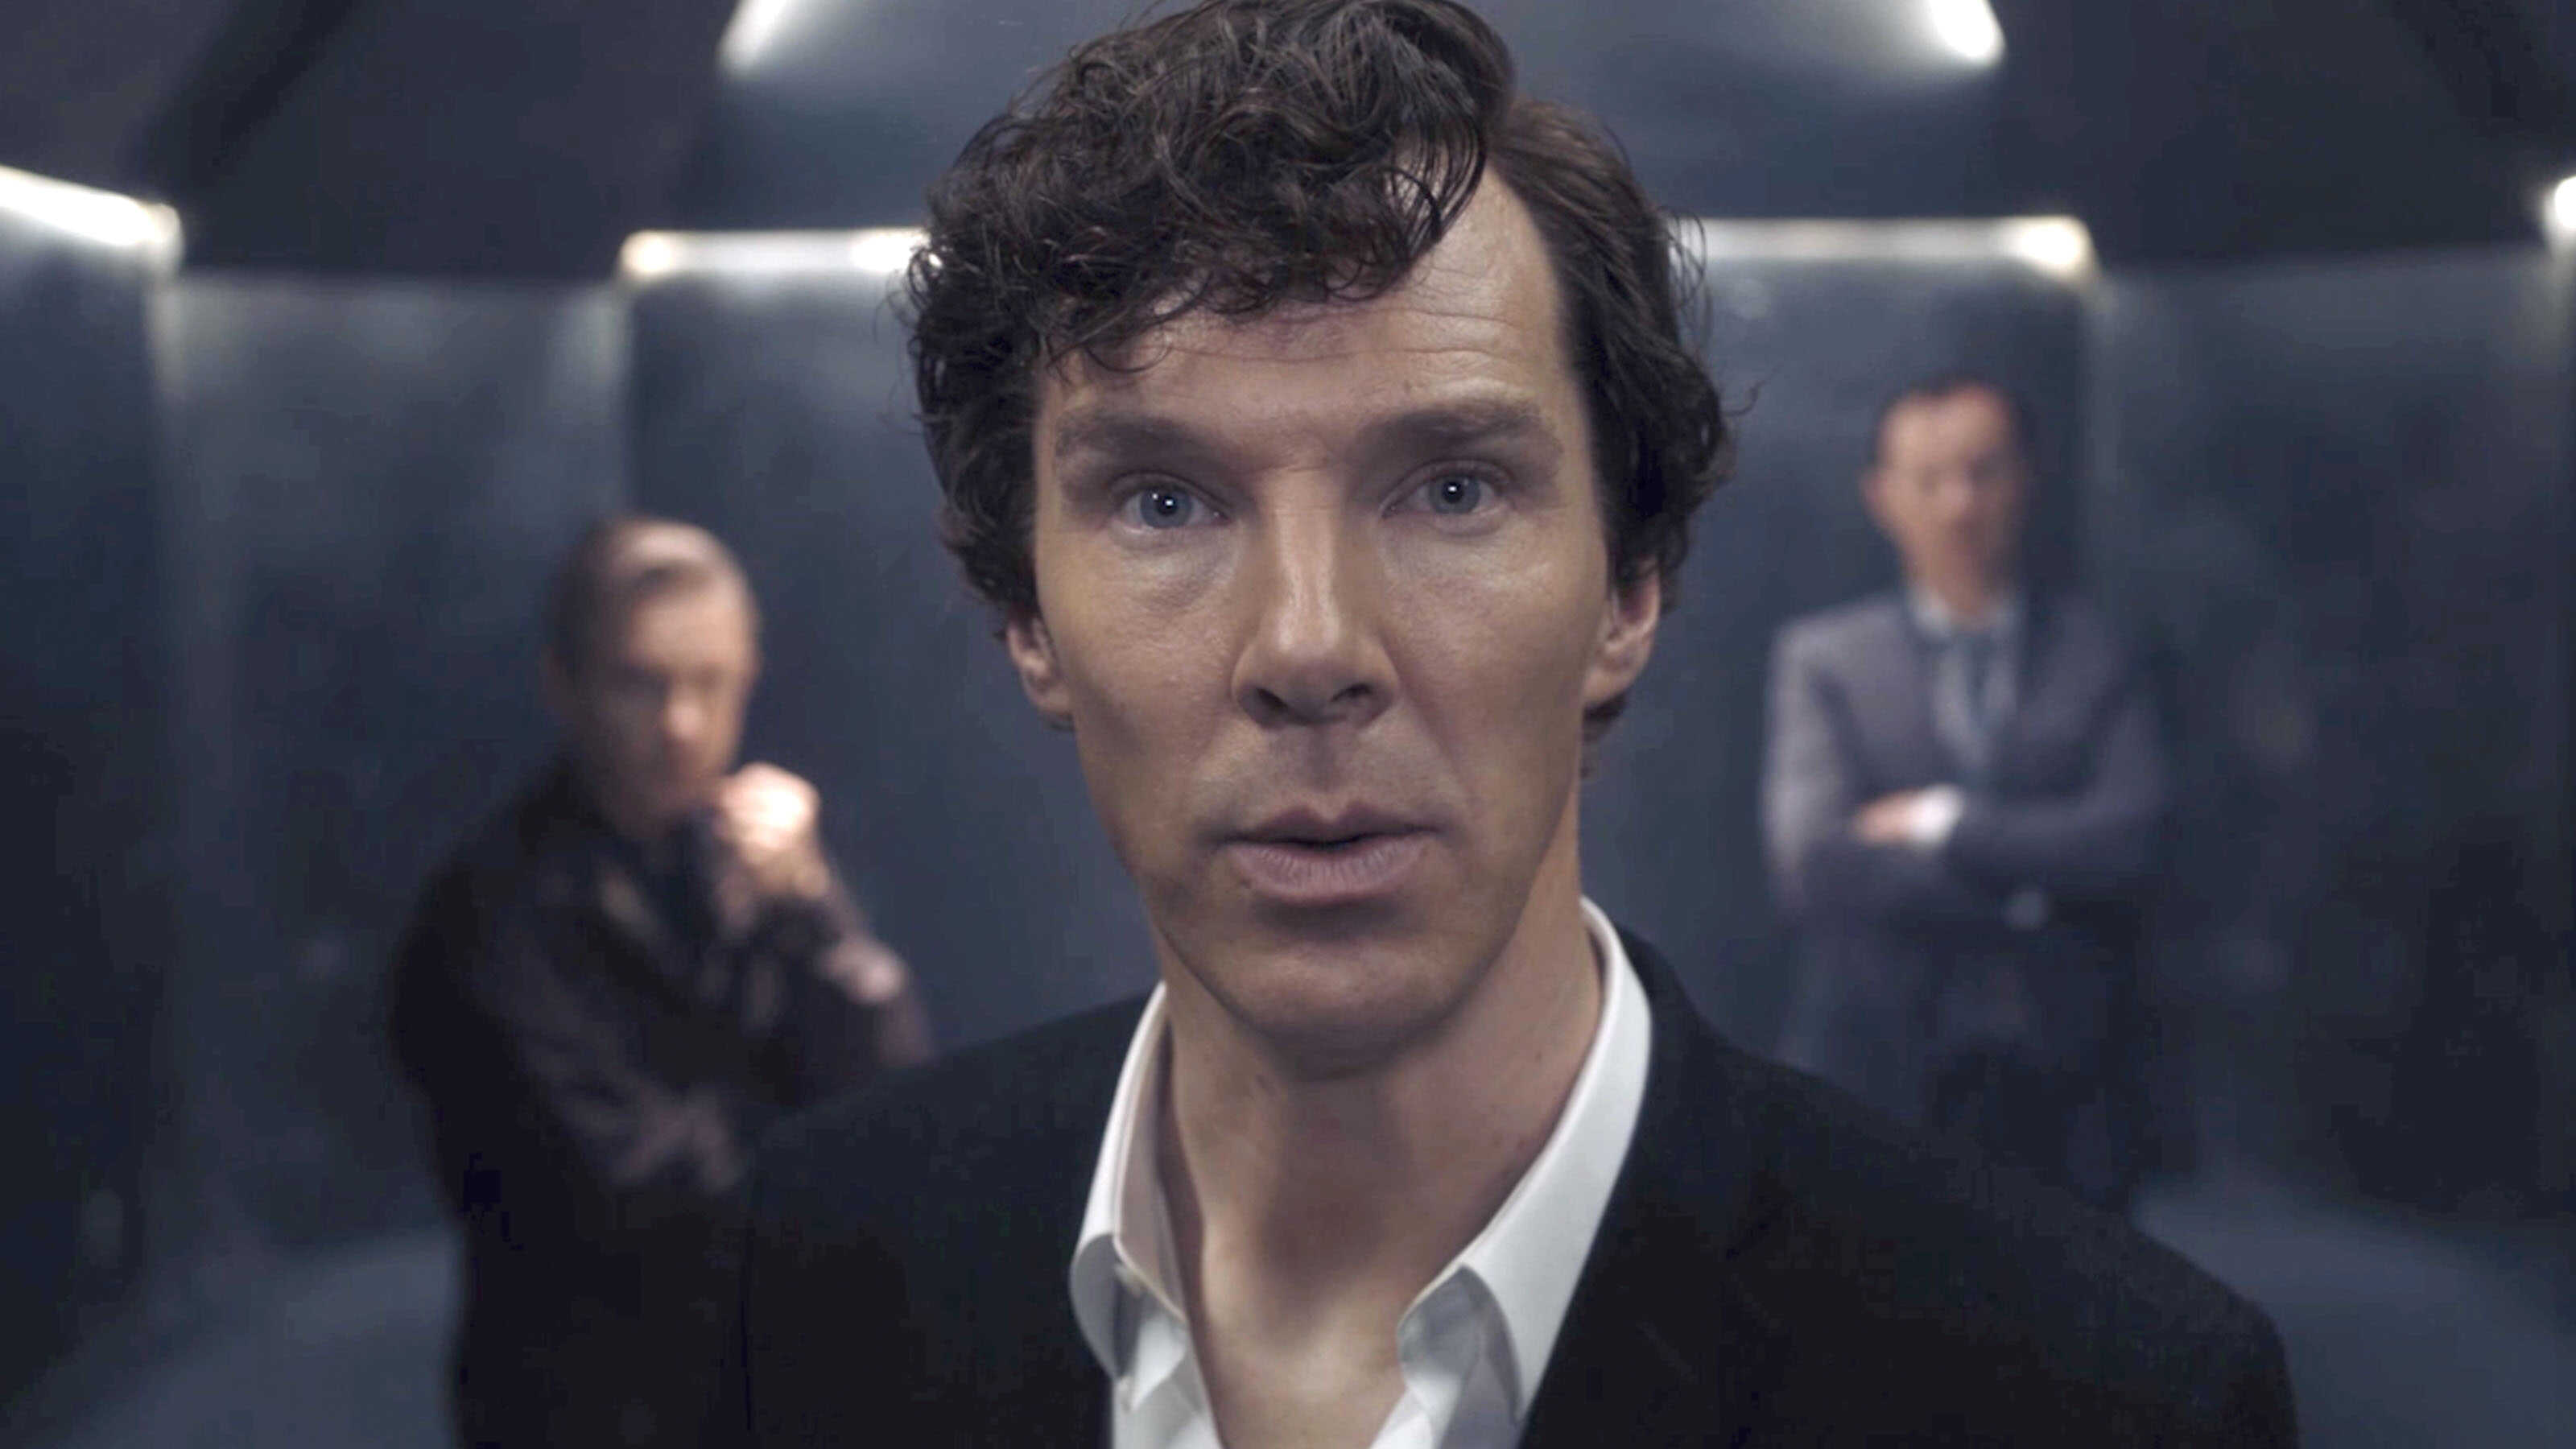 download sherlock holmes season 3 episode 2